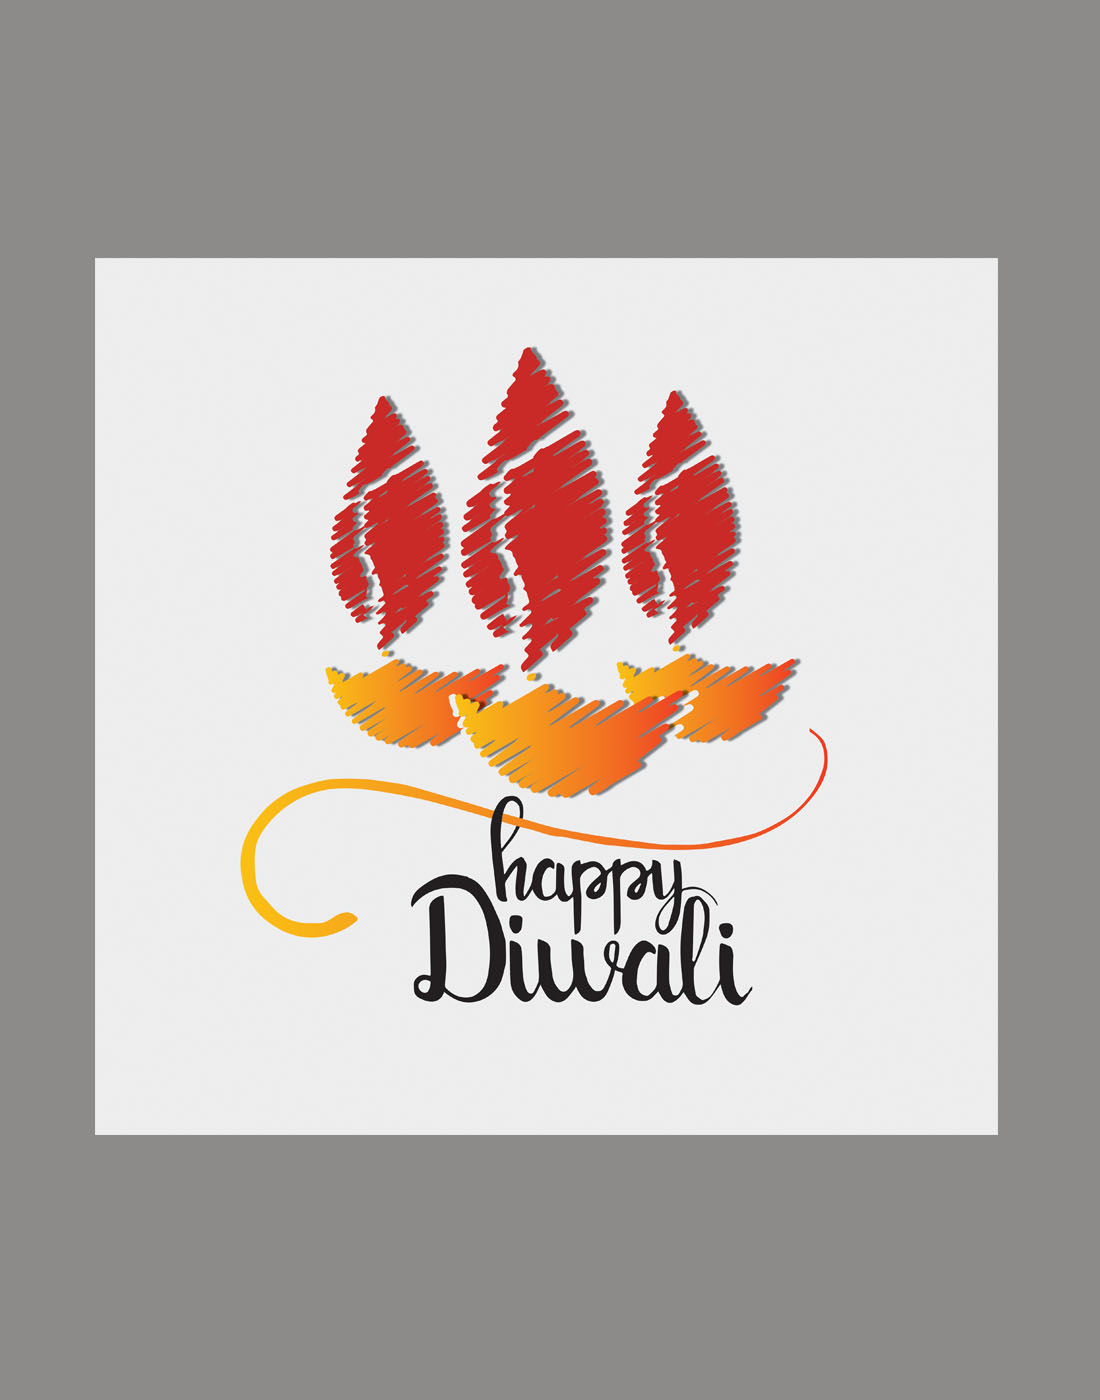 diwali vector graphics